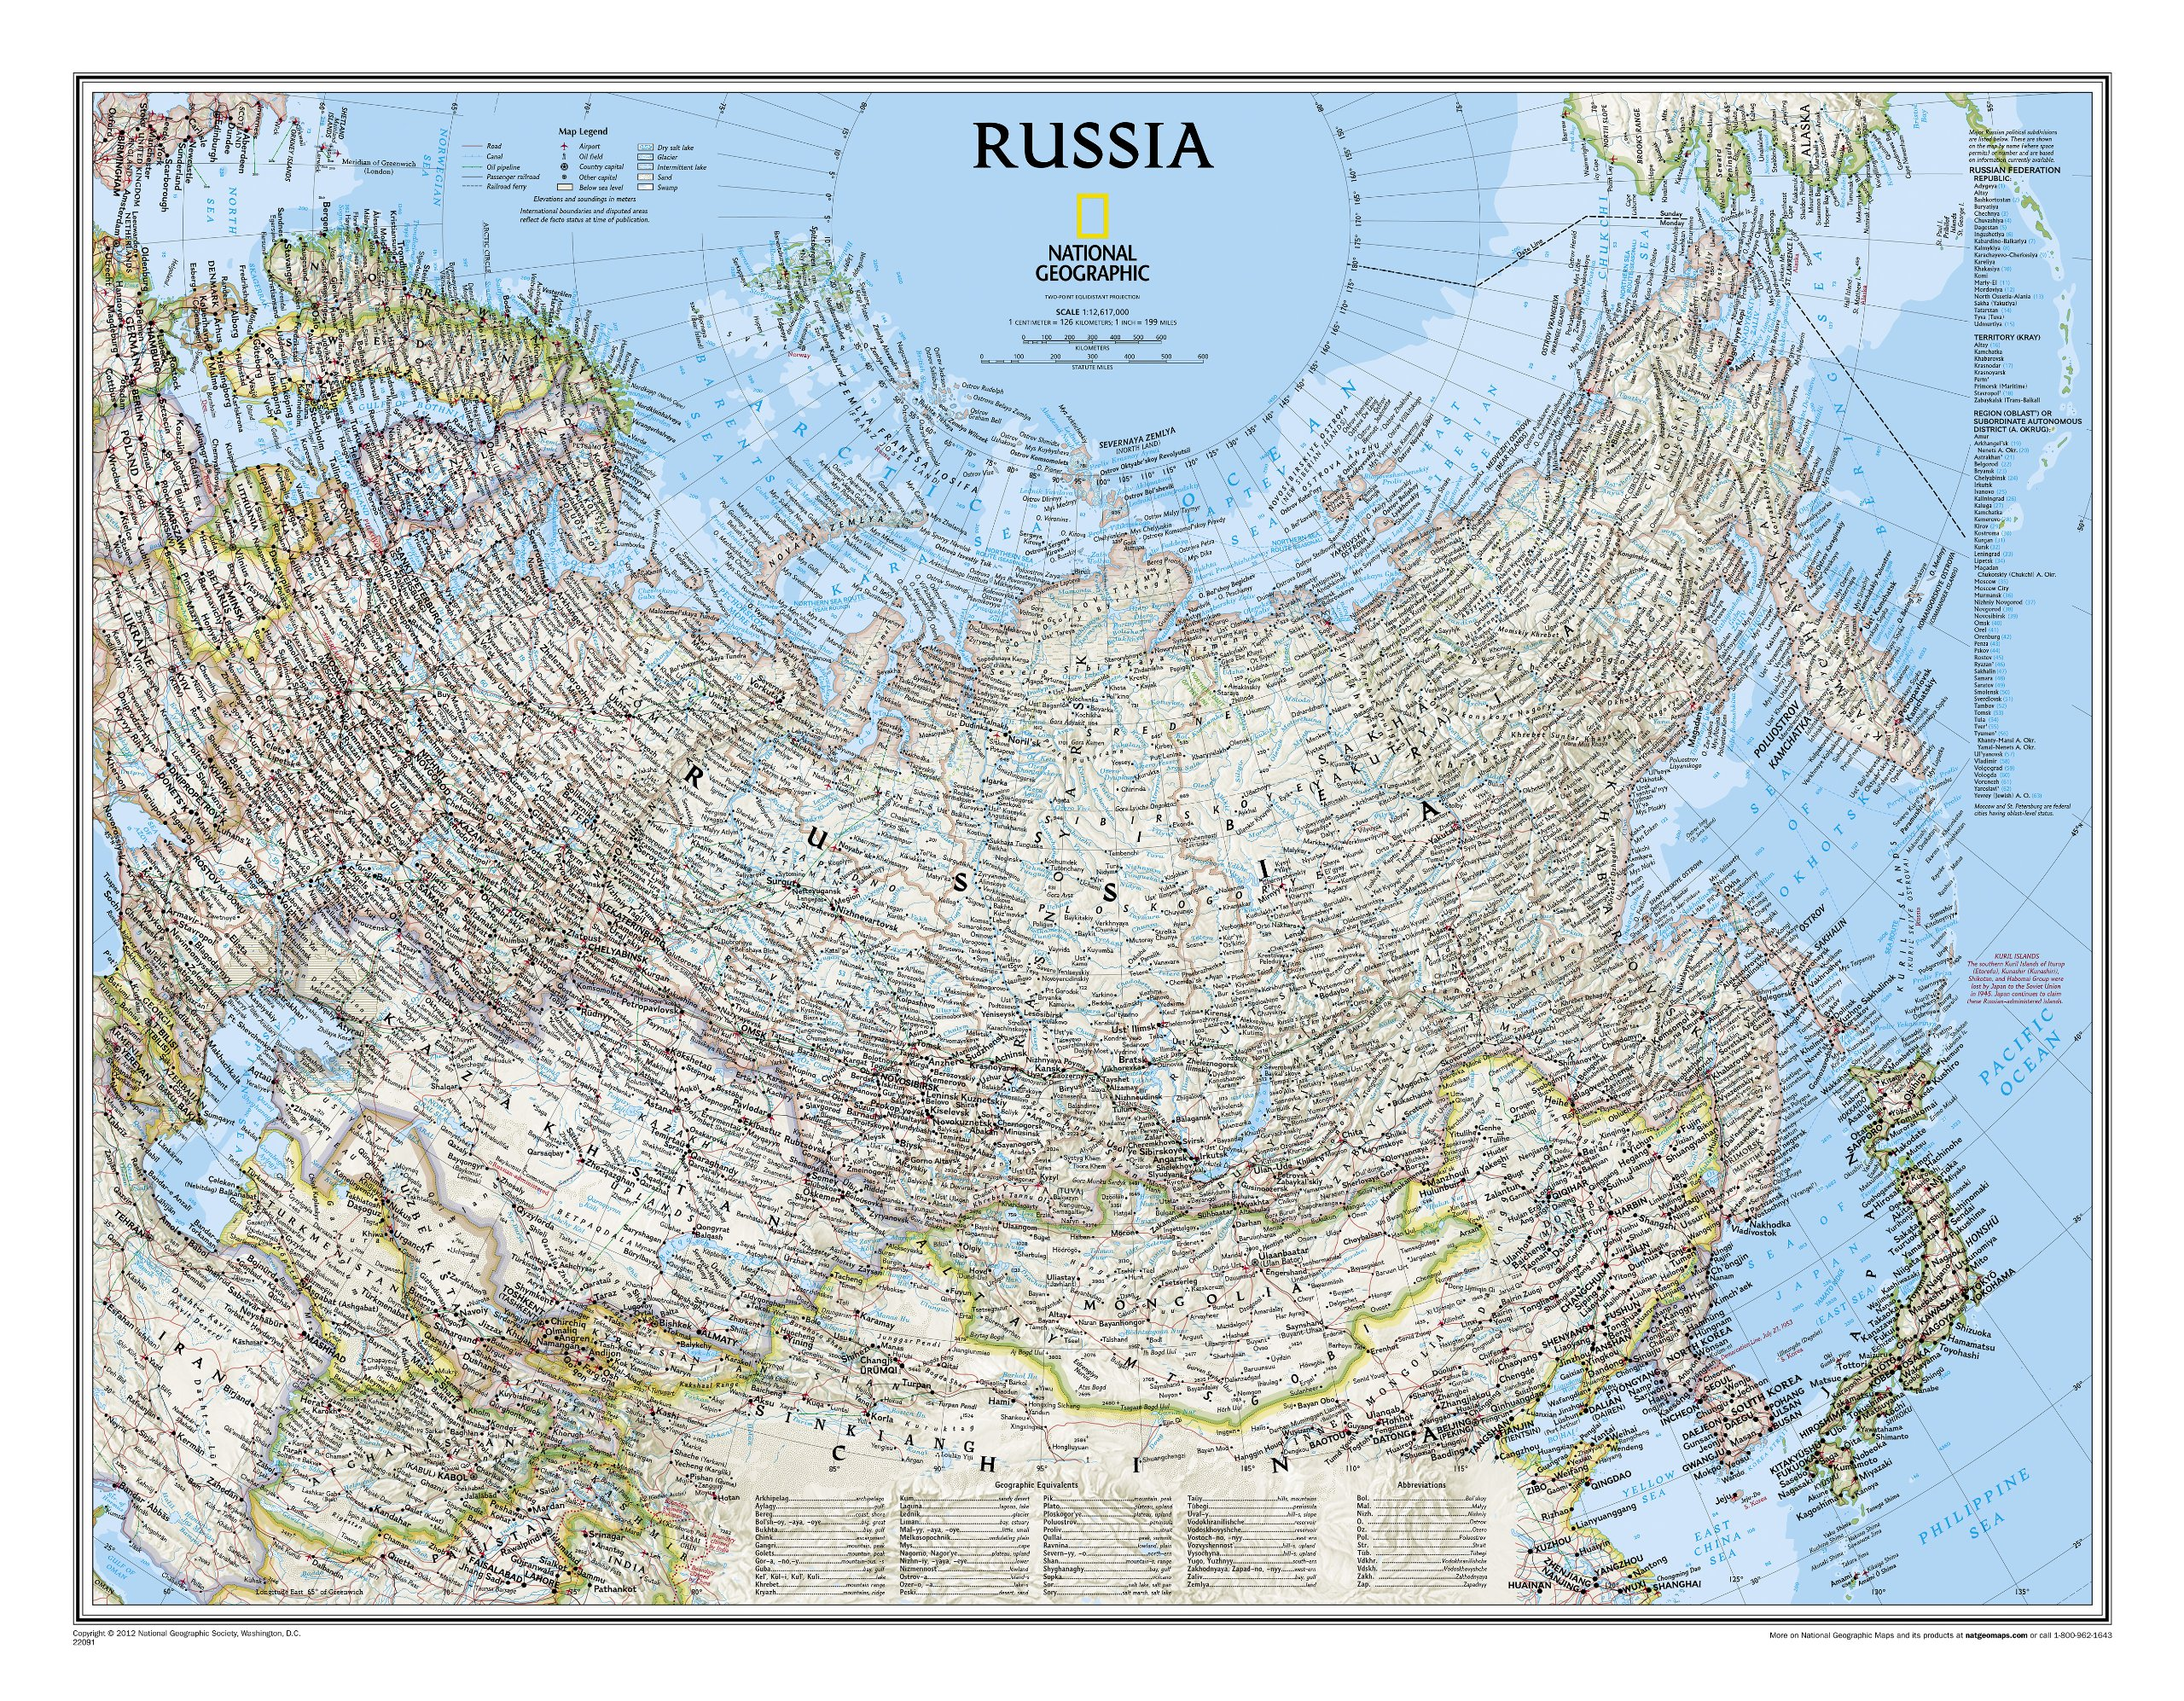 furthermore Map of European Russia   Nations Online Project besides Chart of Russia's fortification of the Arctic   Business Insider moreover Russia Large Color Map likewise Russia and the Former Soviet Republics Maps   Perry Castañeda Map as well  additionally  further show me a map of russia – trackurls info likewise Russia Clic Wall Maps Countries   Regions  National Geographic as well  moreover Central Russia   Ethnologue also  further NICHOLAS and ALEXANDRA   A Map of the Russian Empire in 1913 in addition  further Cuba textbooks show annexed Crimea simultaneously as part of Ukraine additionally . on show map of russia